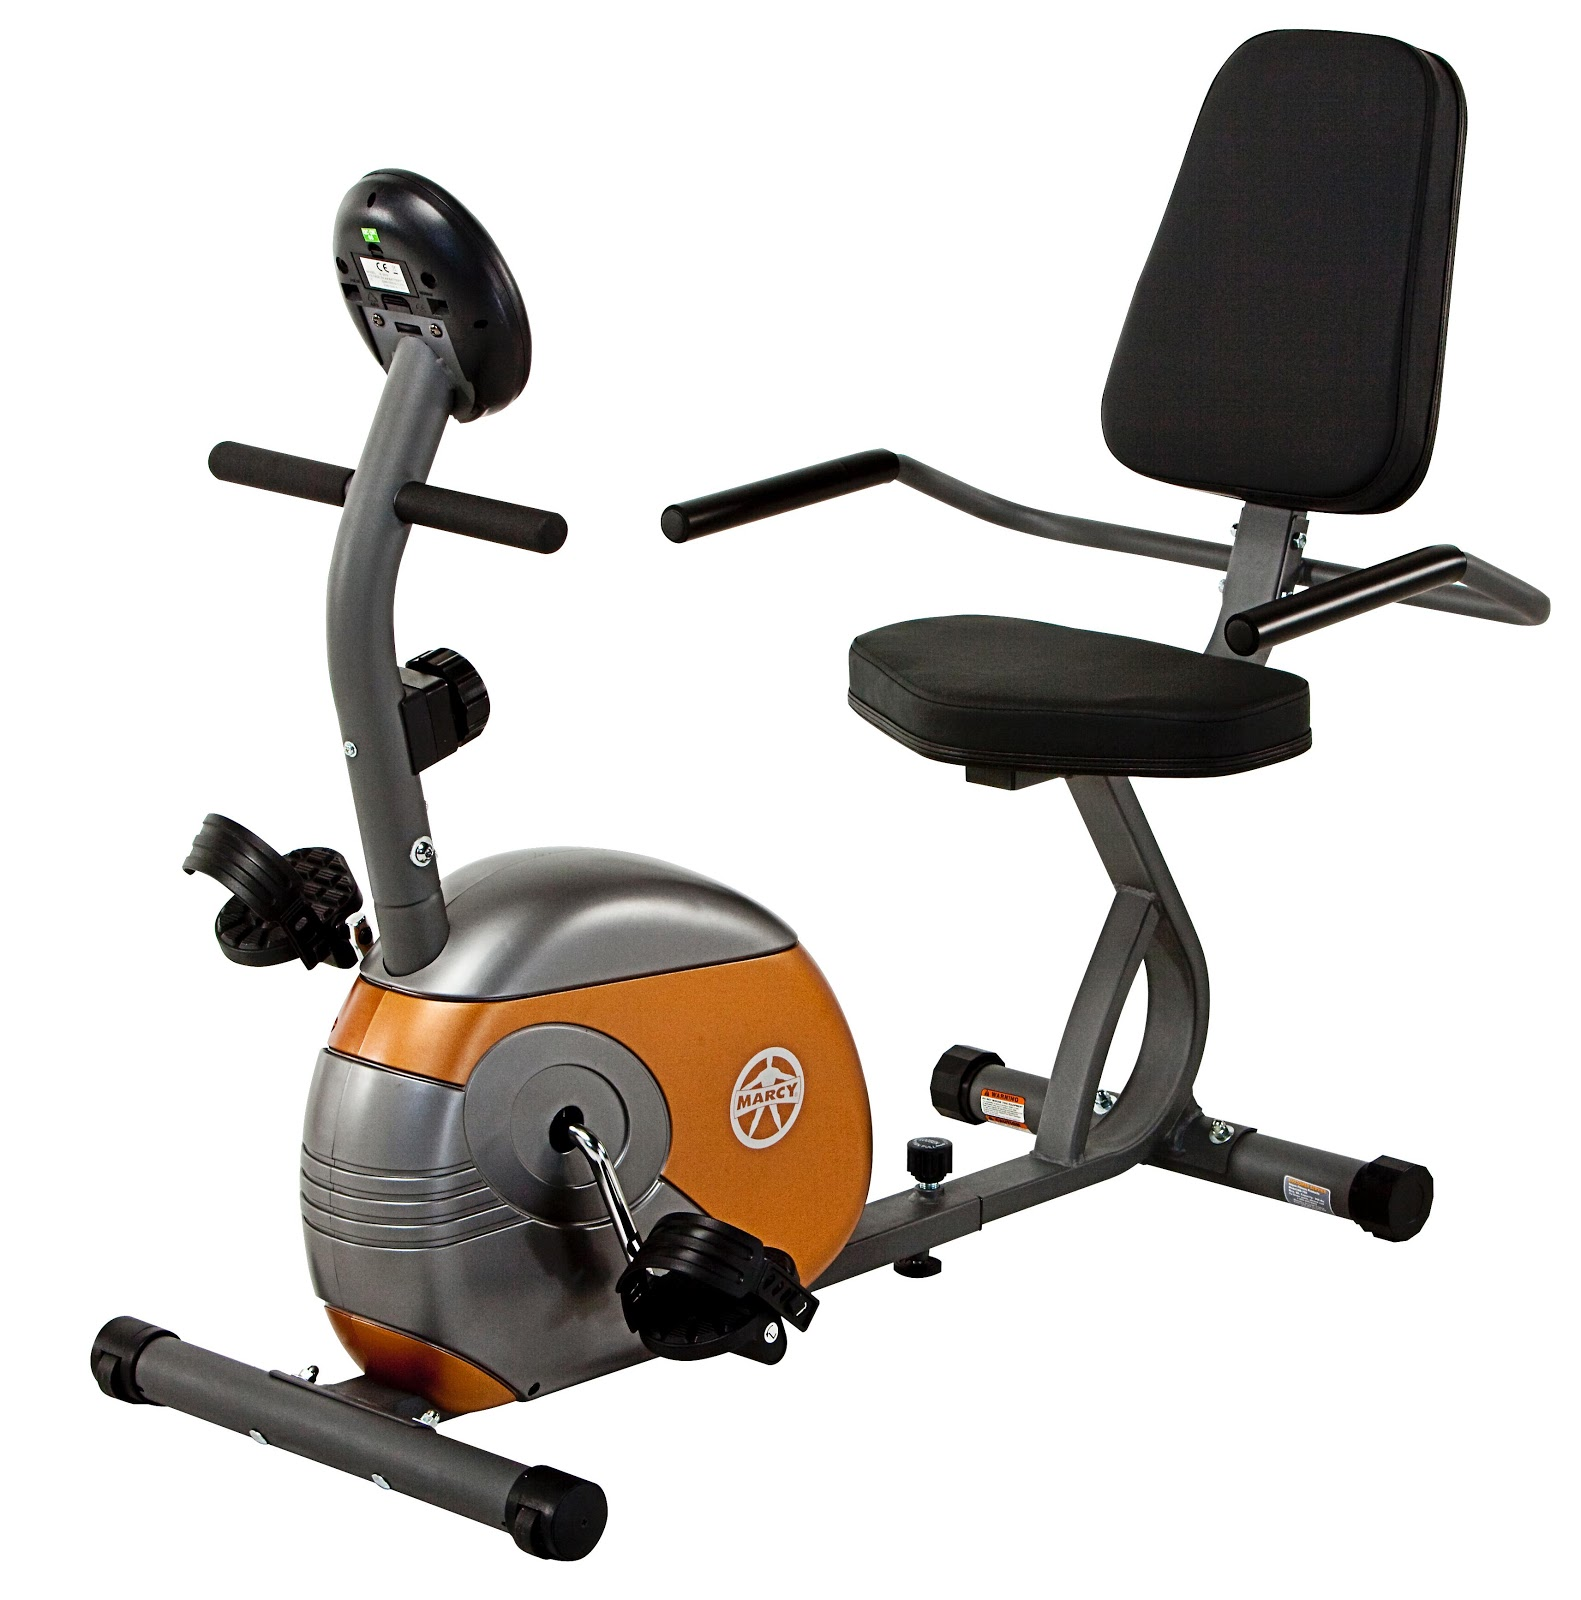 Exercise Bike In Walmart: Marcy Recumbent ME-709 Walmart Exercise Bike Review